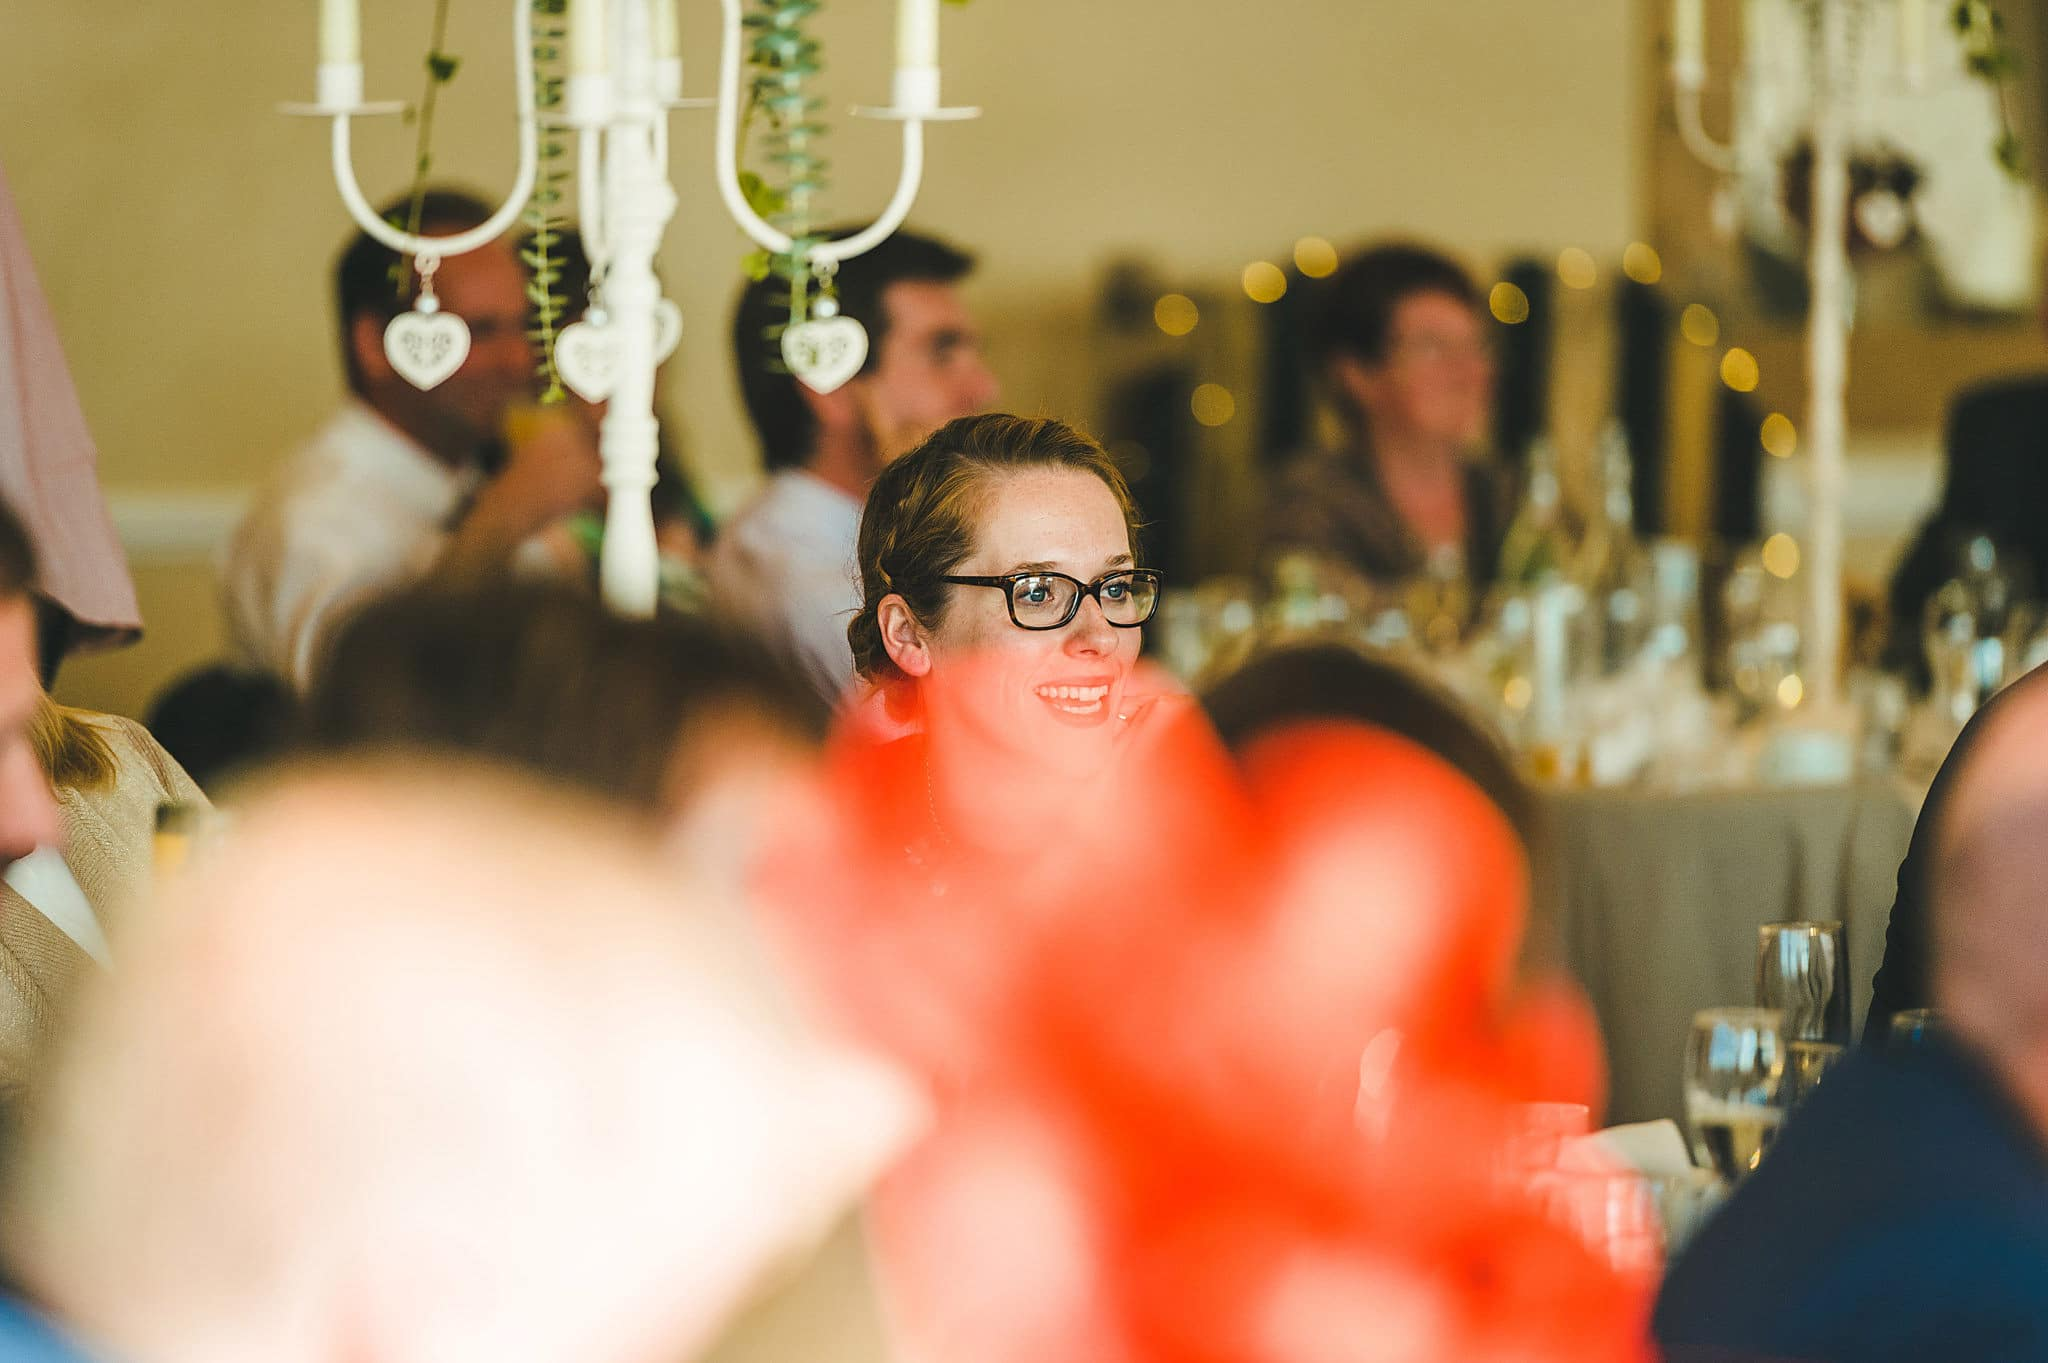 wedding-photography-at-the-cliff-hotel-cardigan (64)